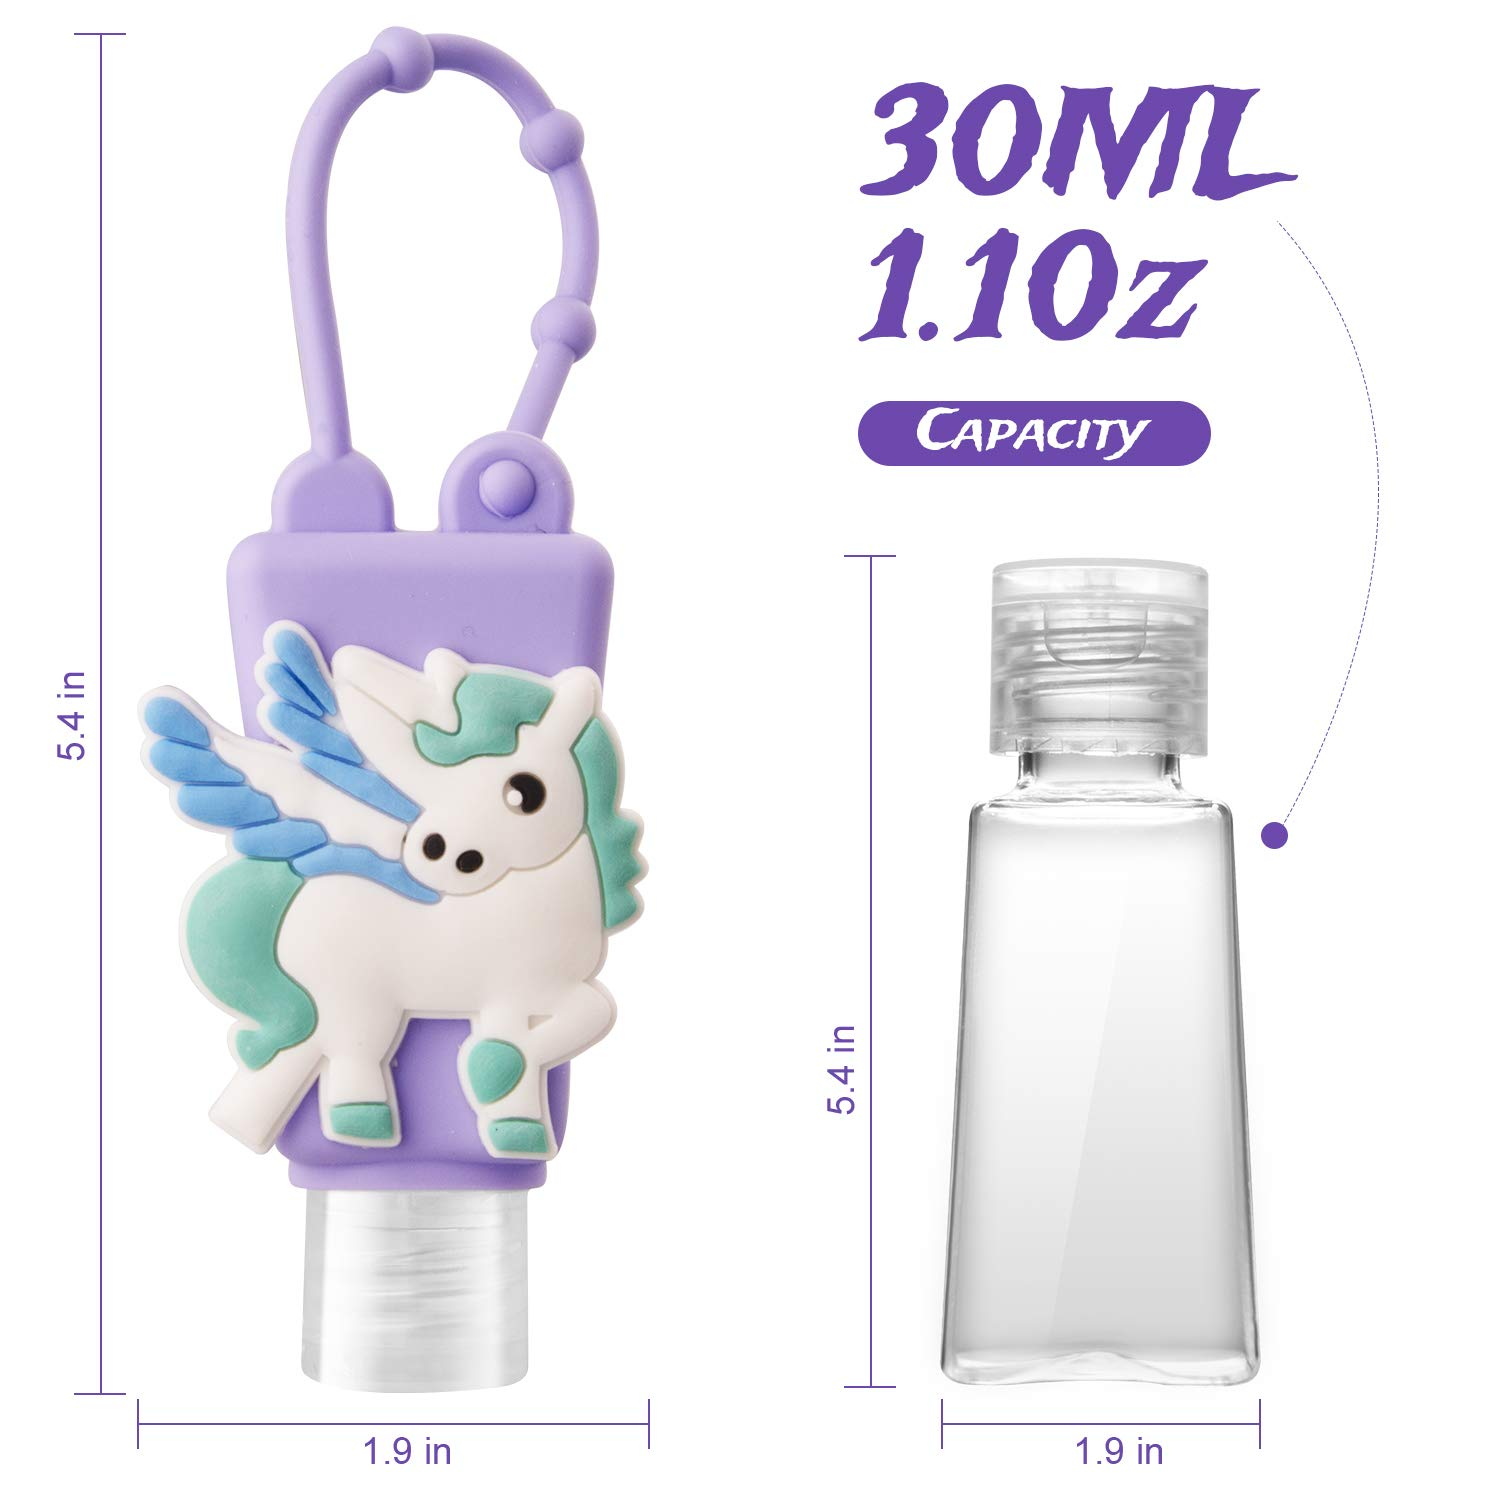 6pcs kids hand sanitizer holders with silicone case leakproof refillable portable bottles,mini detachable hand cleaner holders,l